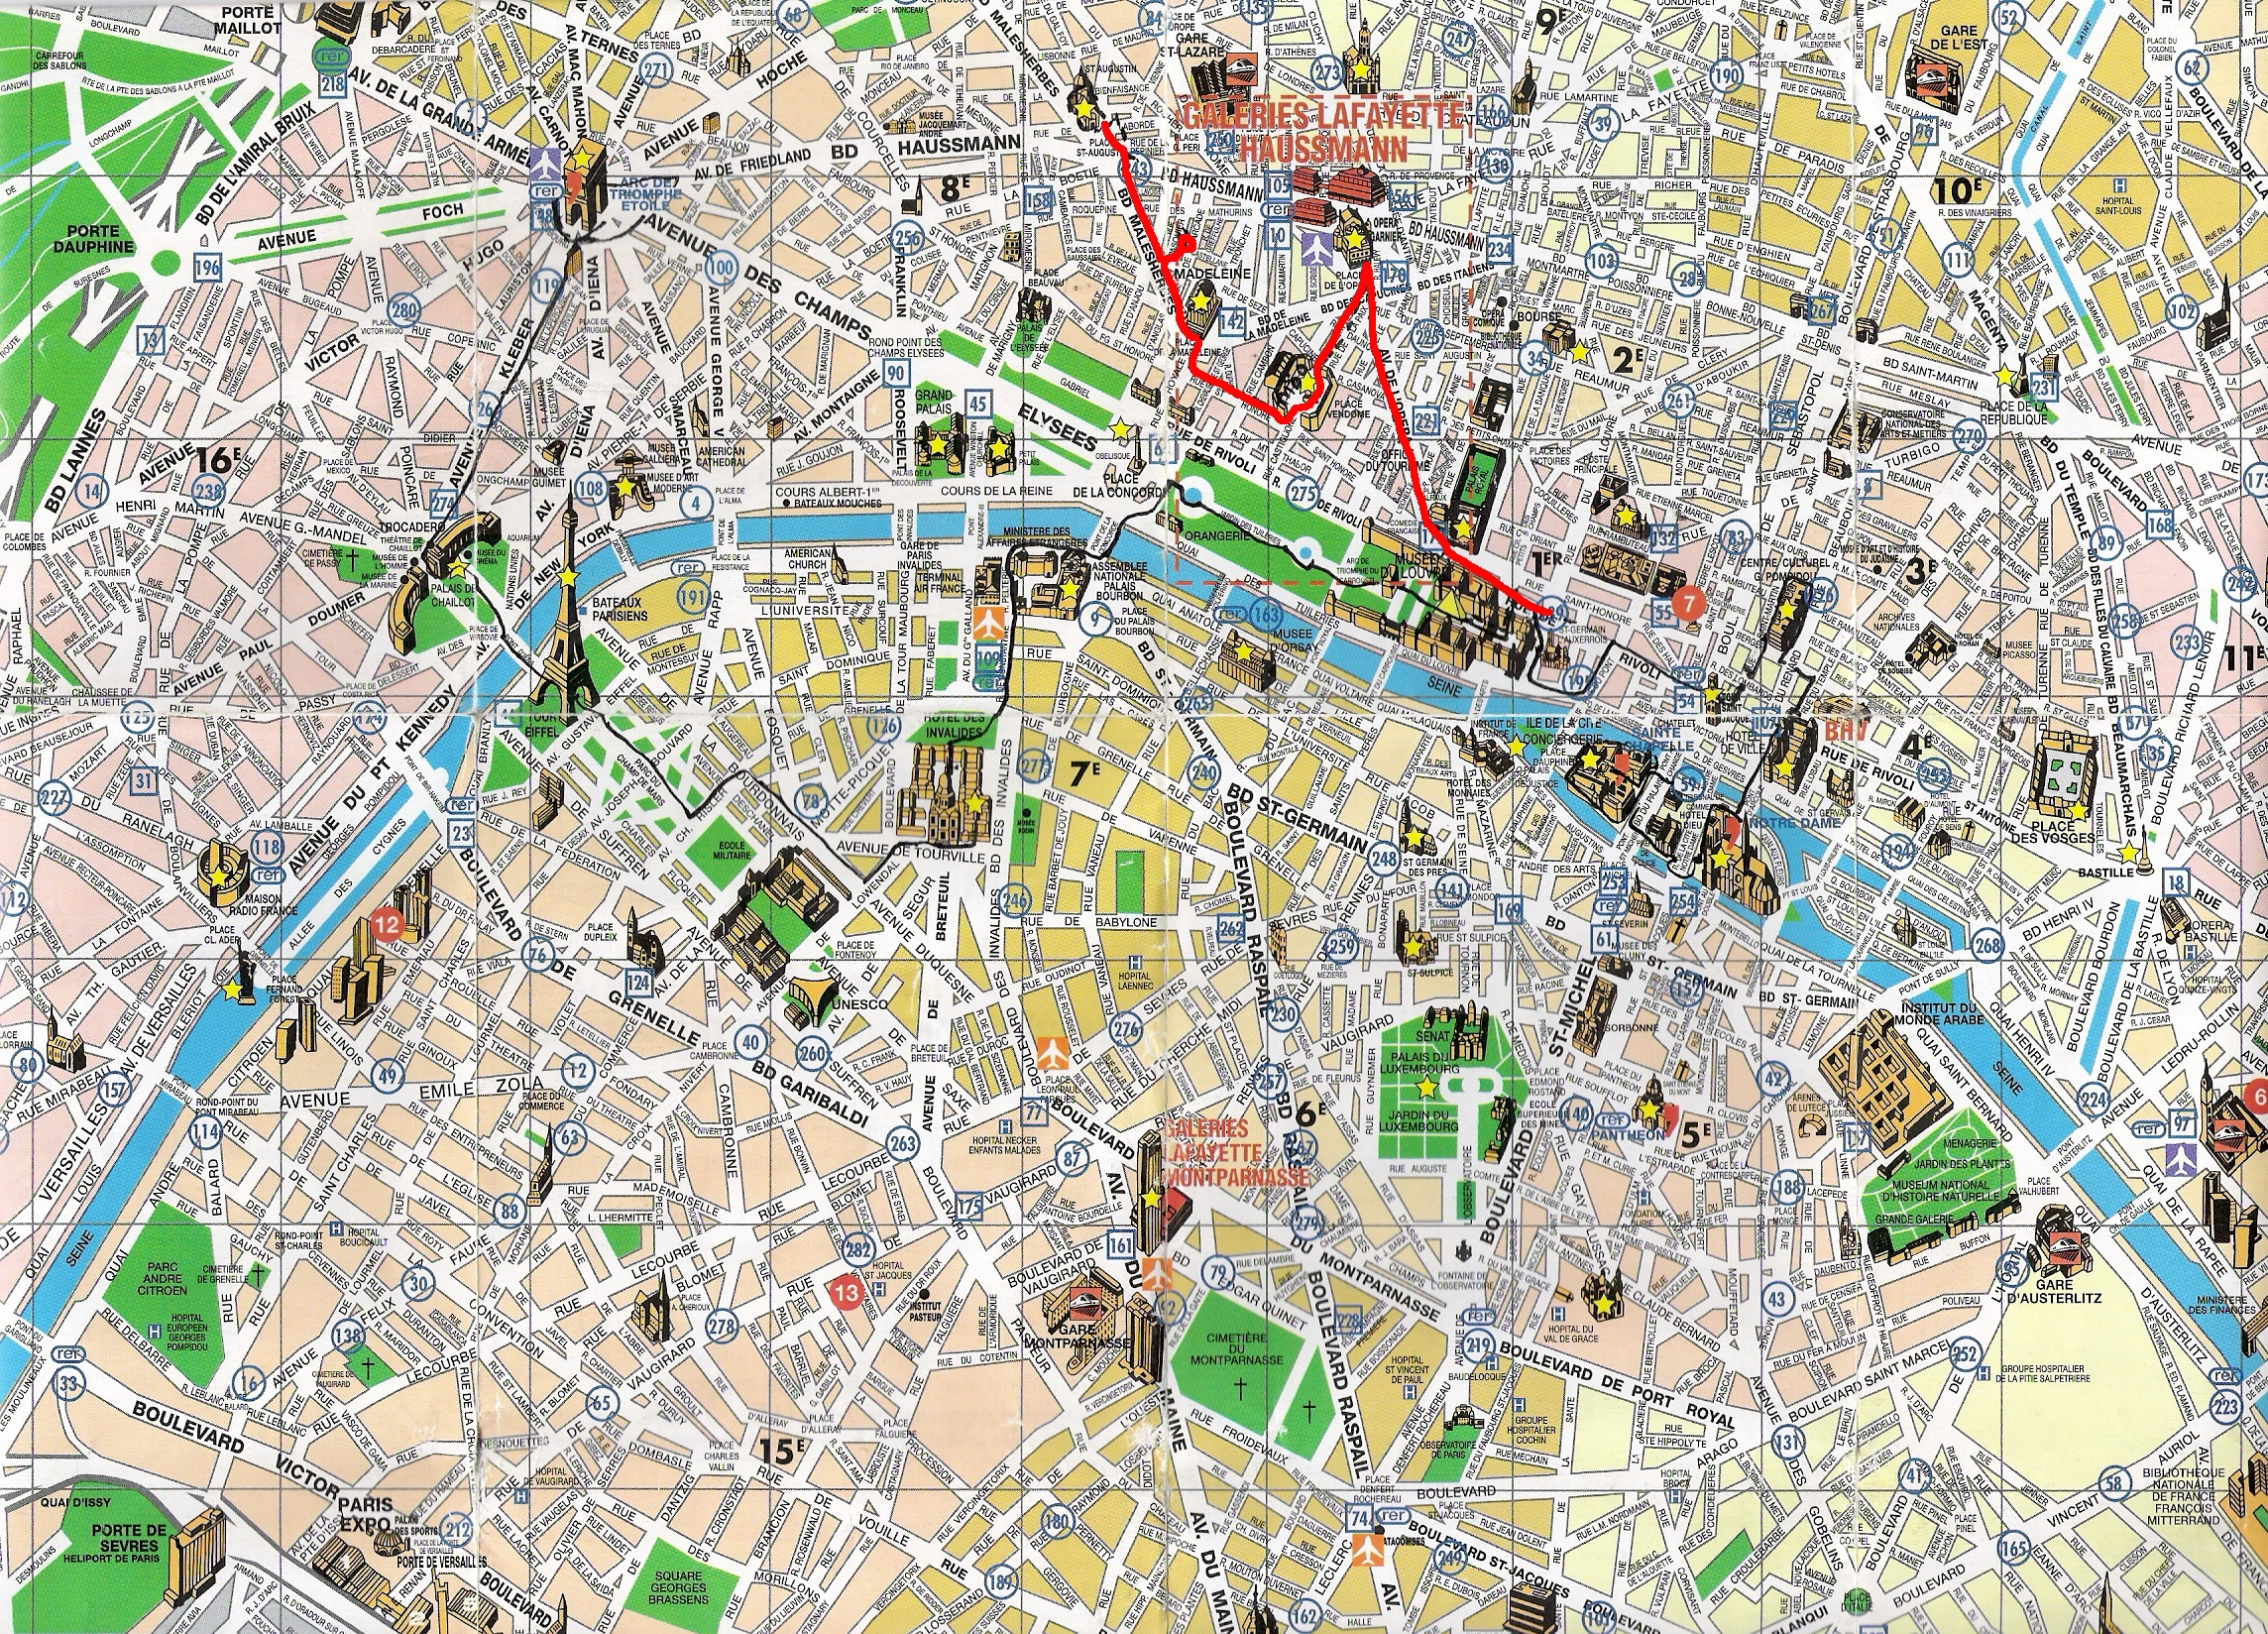 Map Of Paris Attractions Printable Download Map Paris Tourist - Paris Map For Tourists Printable